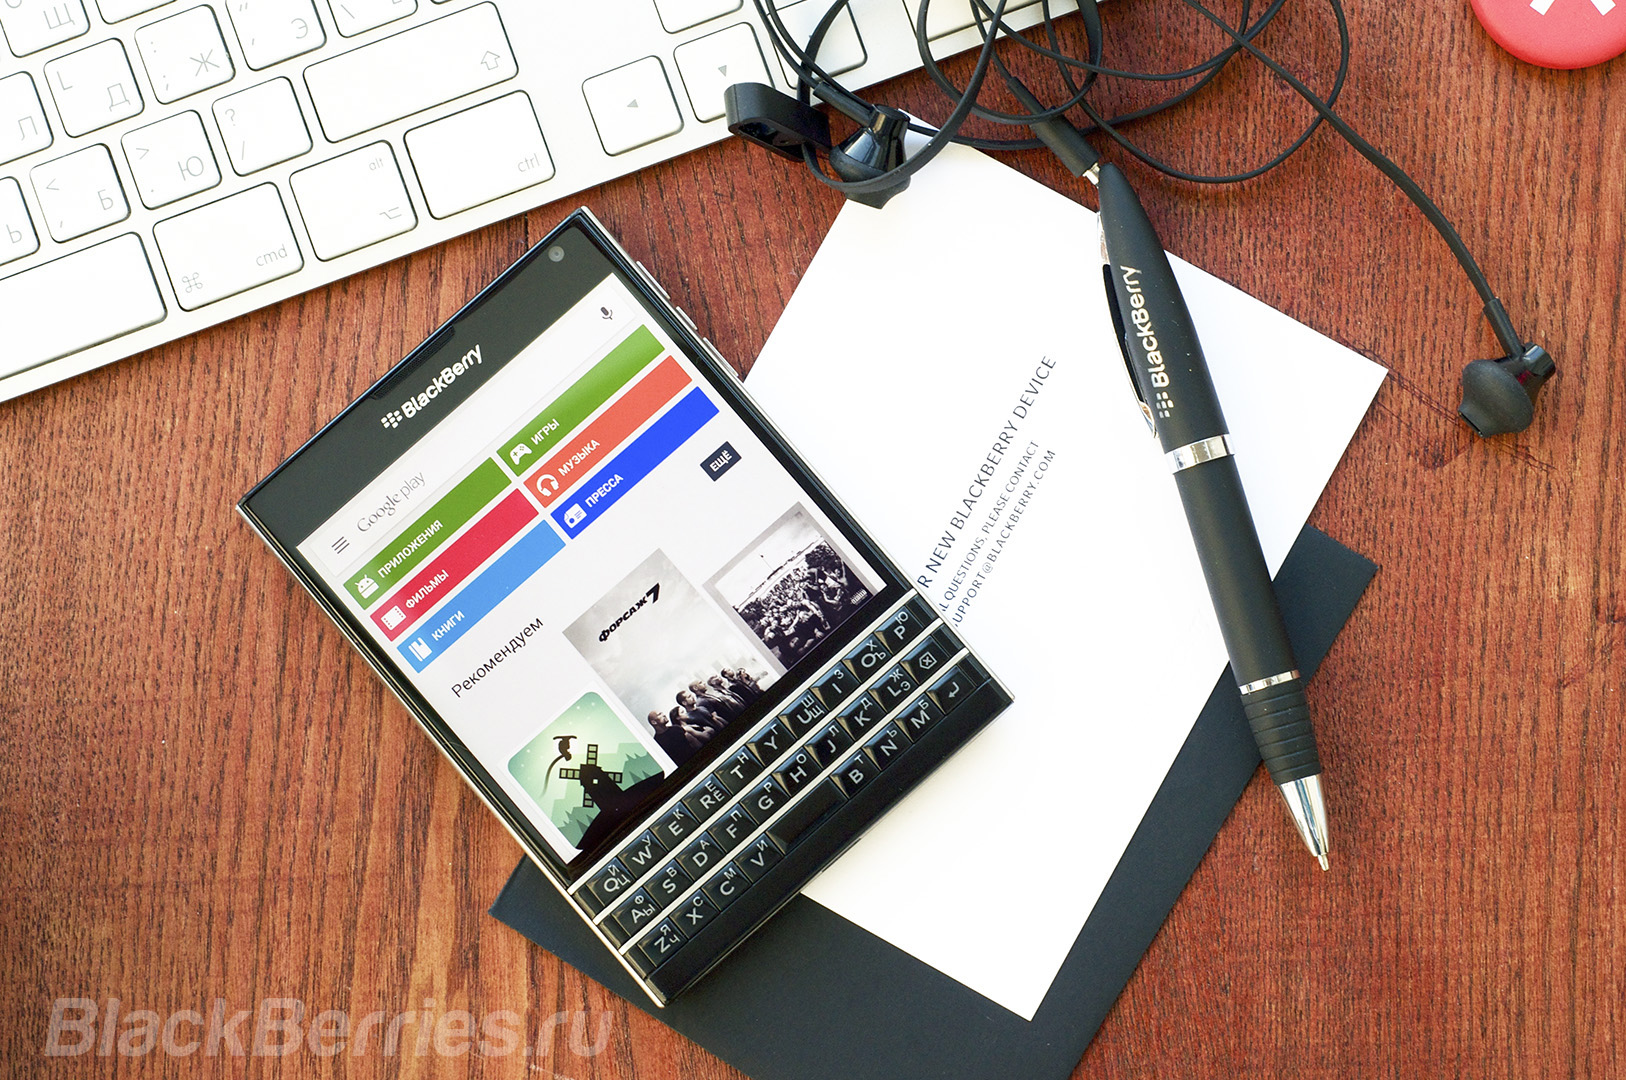 BlackBerry-Passport-Review-2016-33